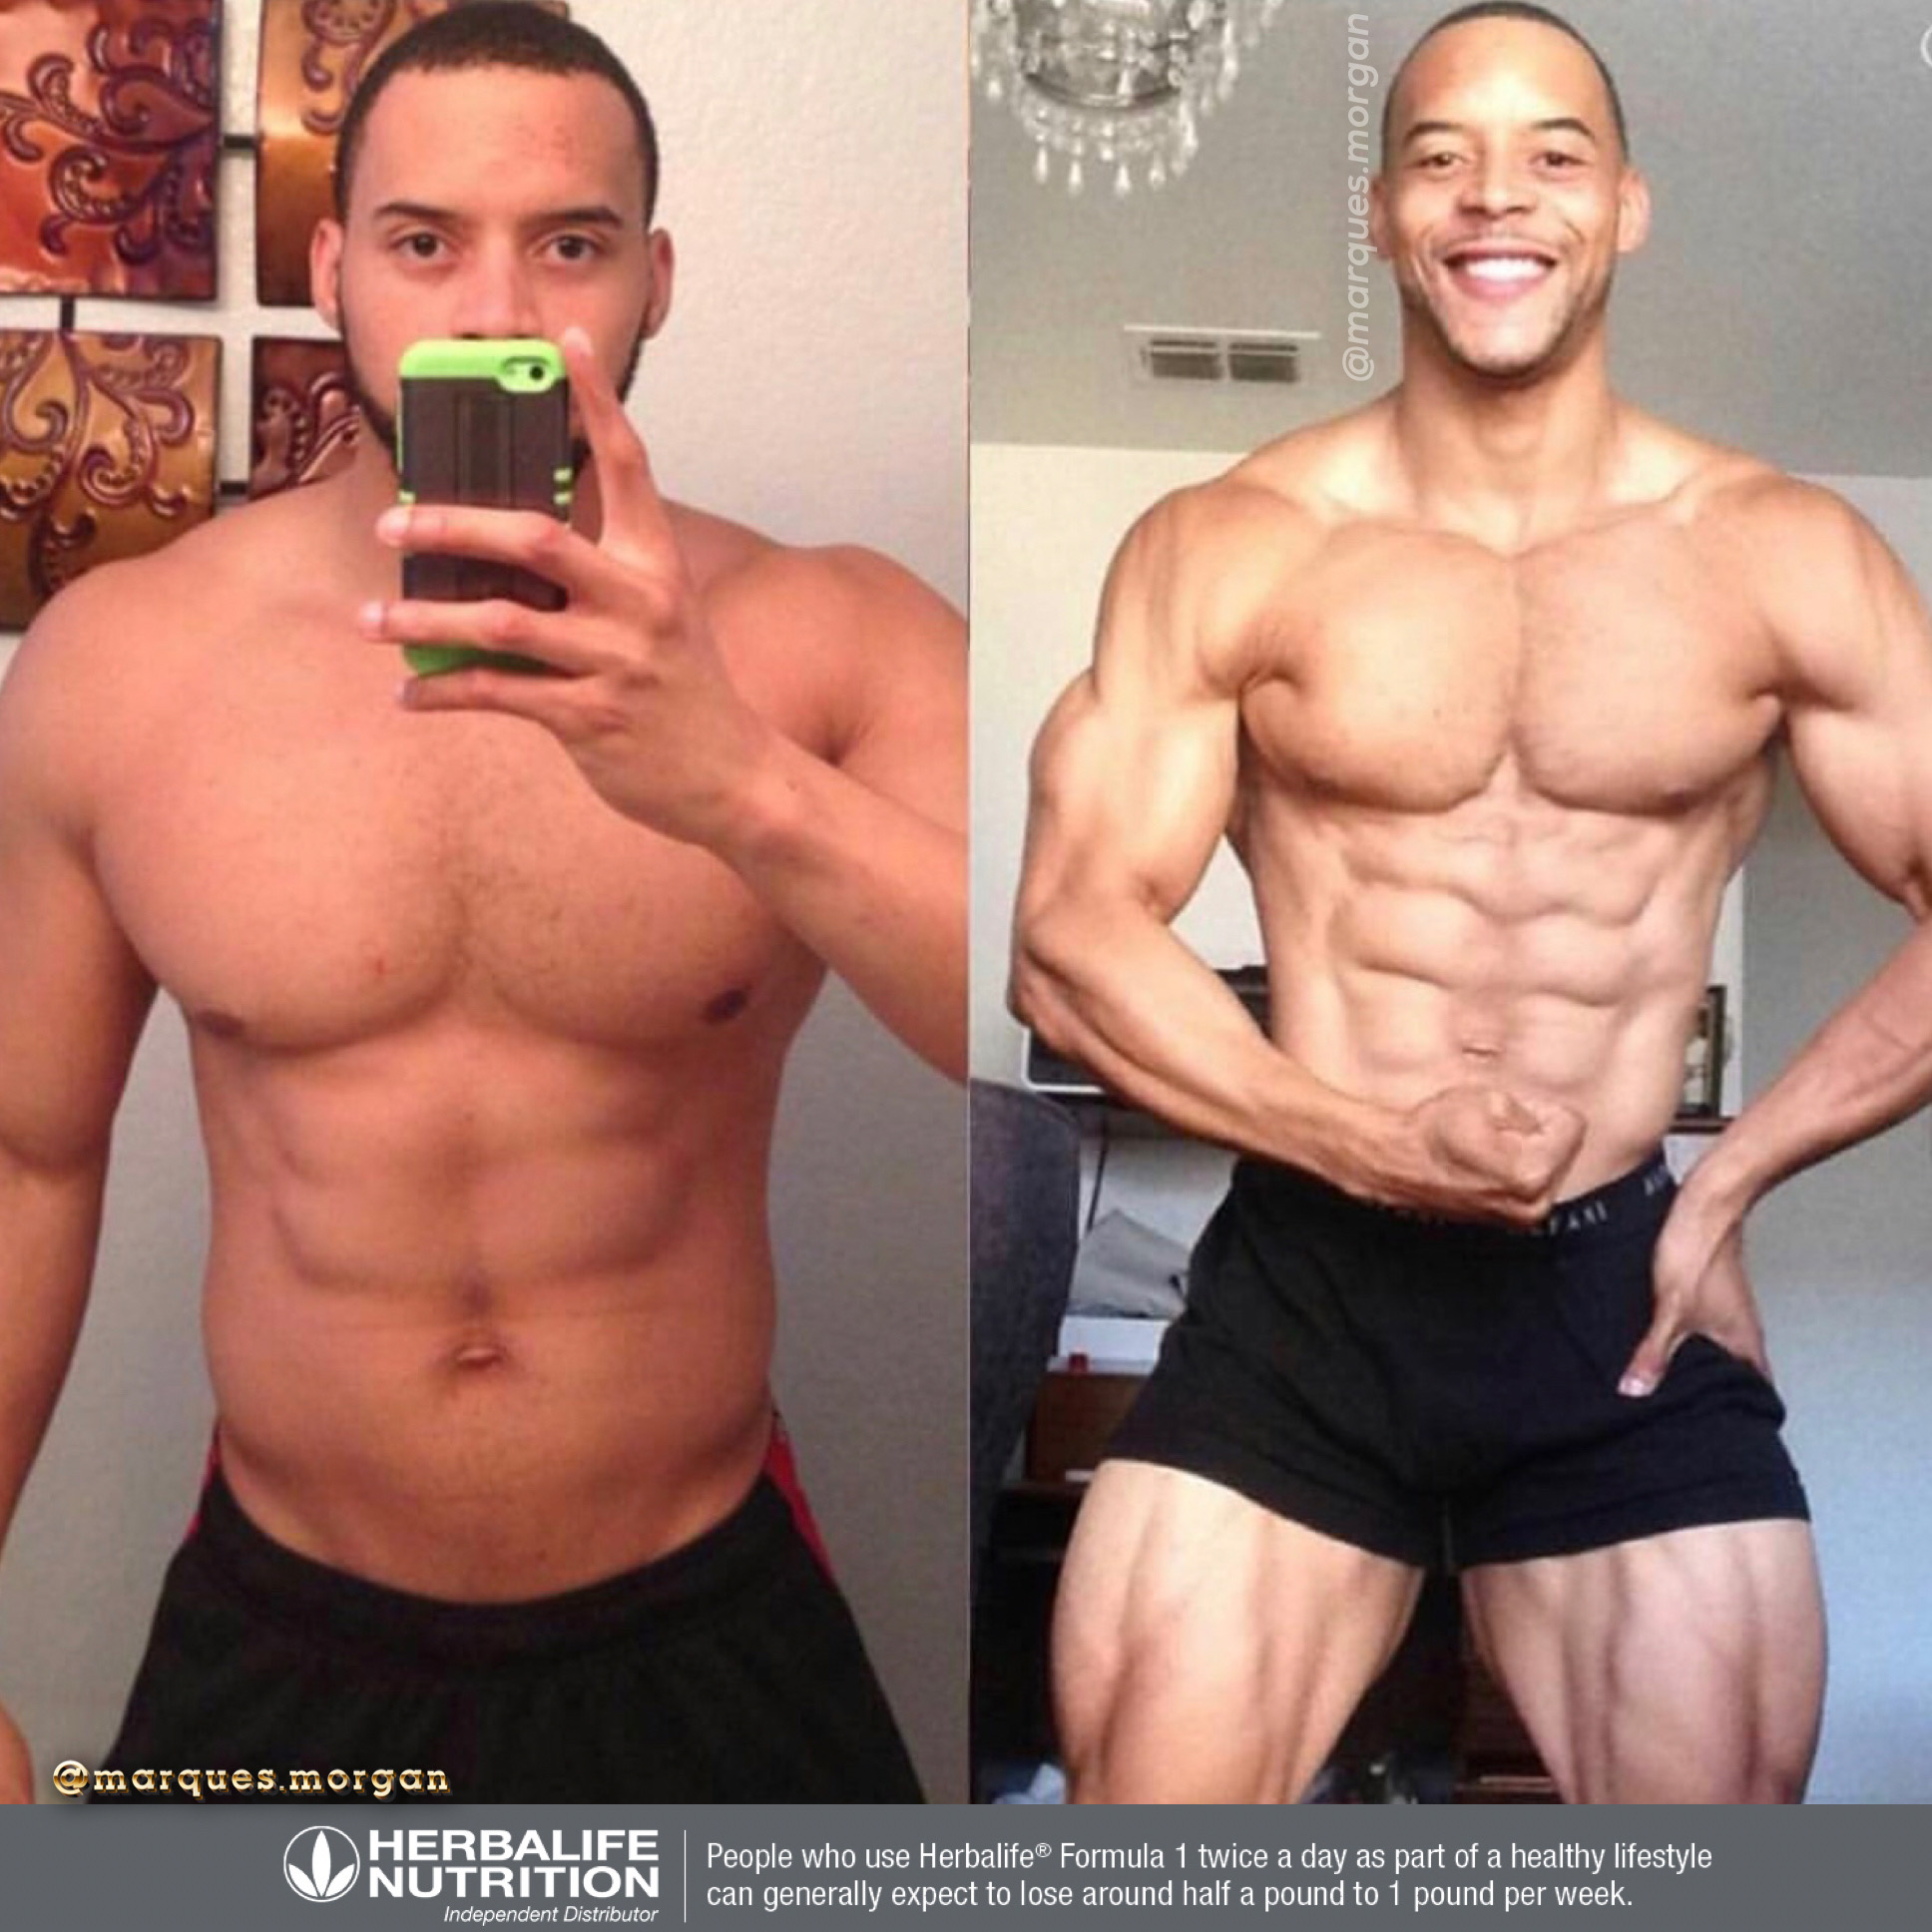 Marques Morgan - Before Herbalife I was an out of shape college athlete who lost the vitality to live my best life. Overweight, tired, and unhealthy I was not headed in the right direction. After Herbalife I lost over 30 lbs, dropped my body fat, and even competed in a natural bodybuilding competition earning my pro card. I regained my energy and and haven't looked back.